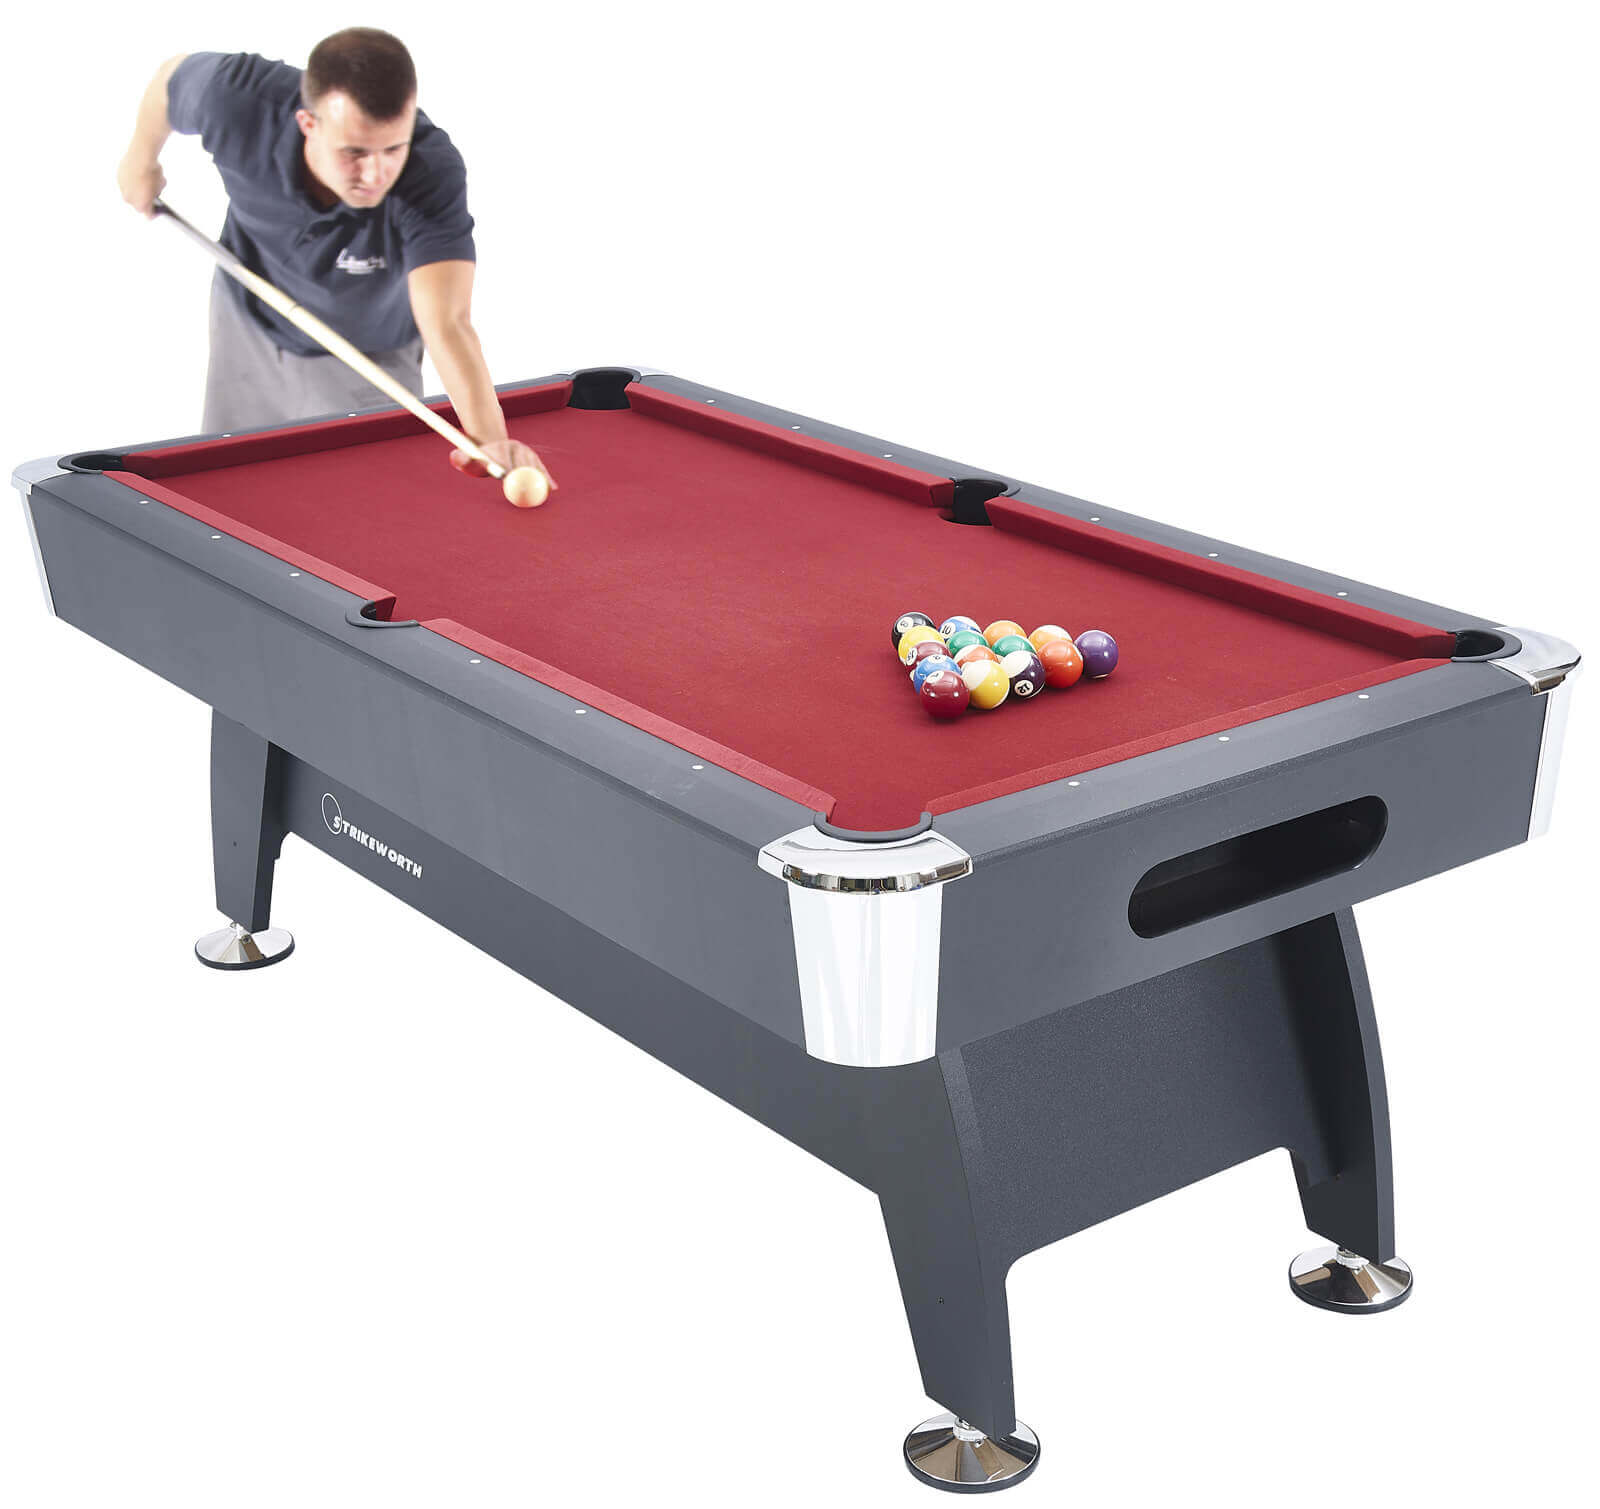 Strikeworth Pro American Deluxe 7ft Pool Table Liberty Games : 4957strikeworth pro american deluxe 7ft pool table from libertygames.co.uk size 1500 x 1421 jpeg 92kB